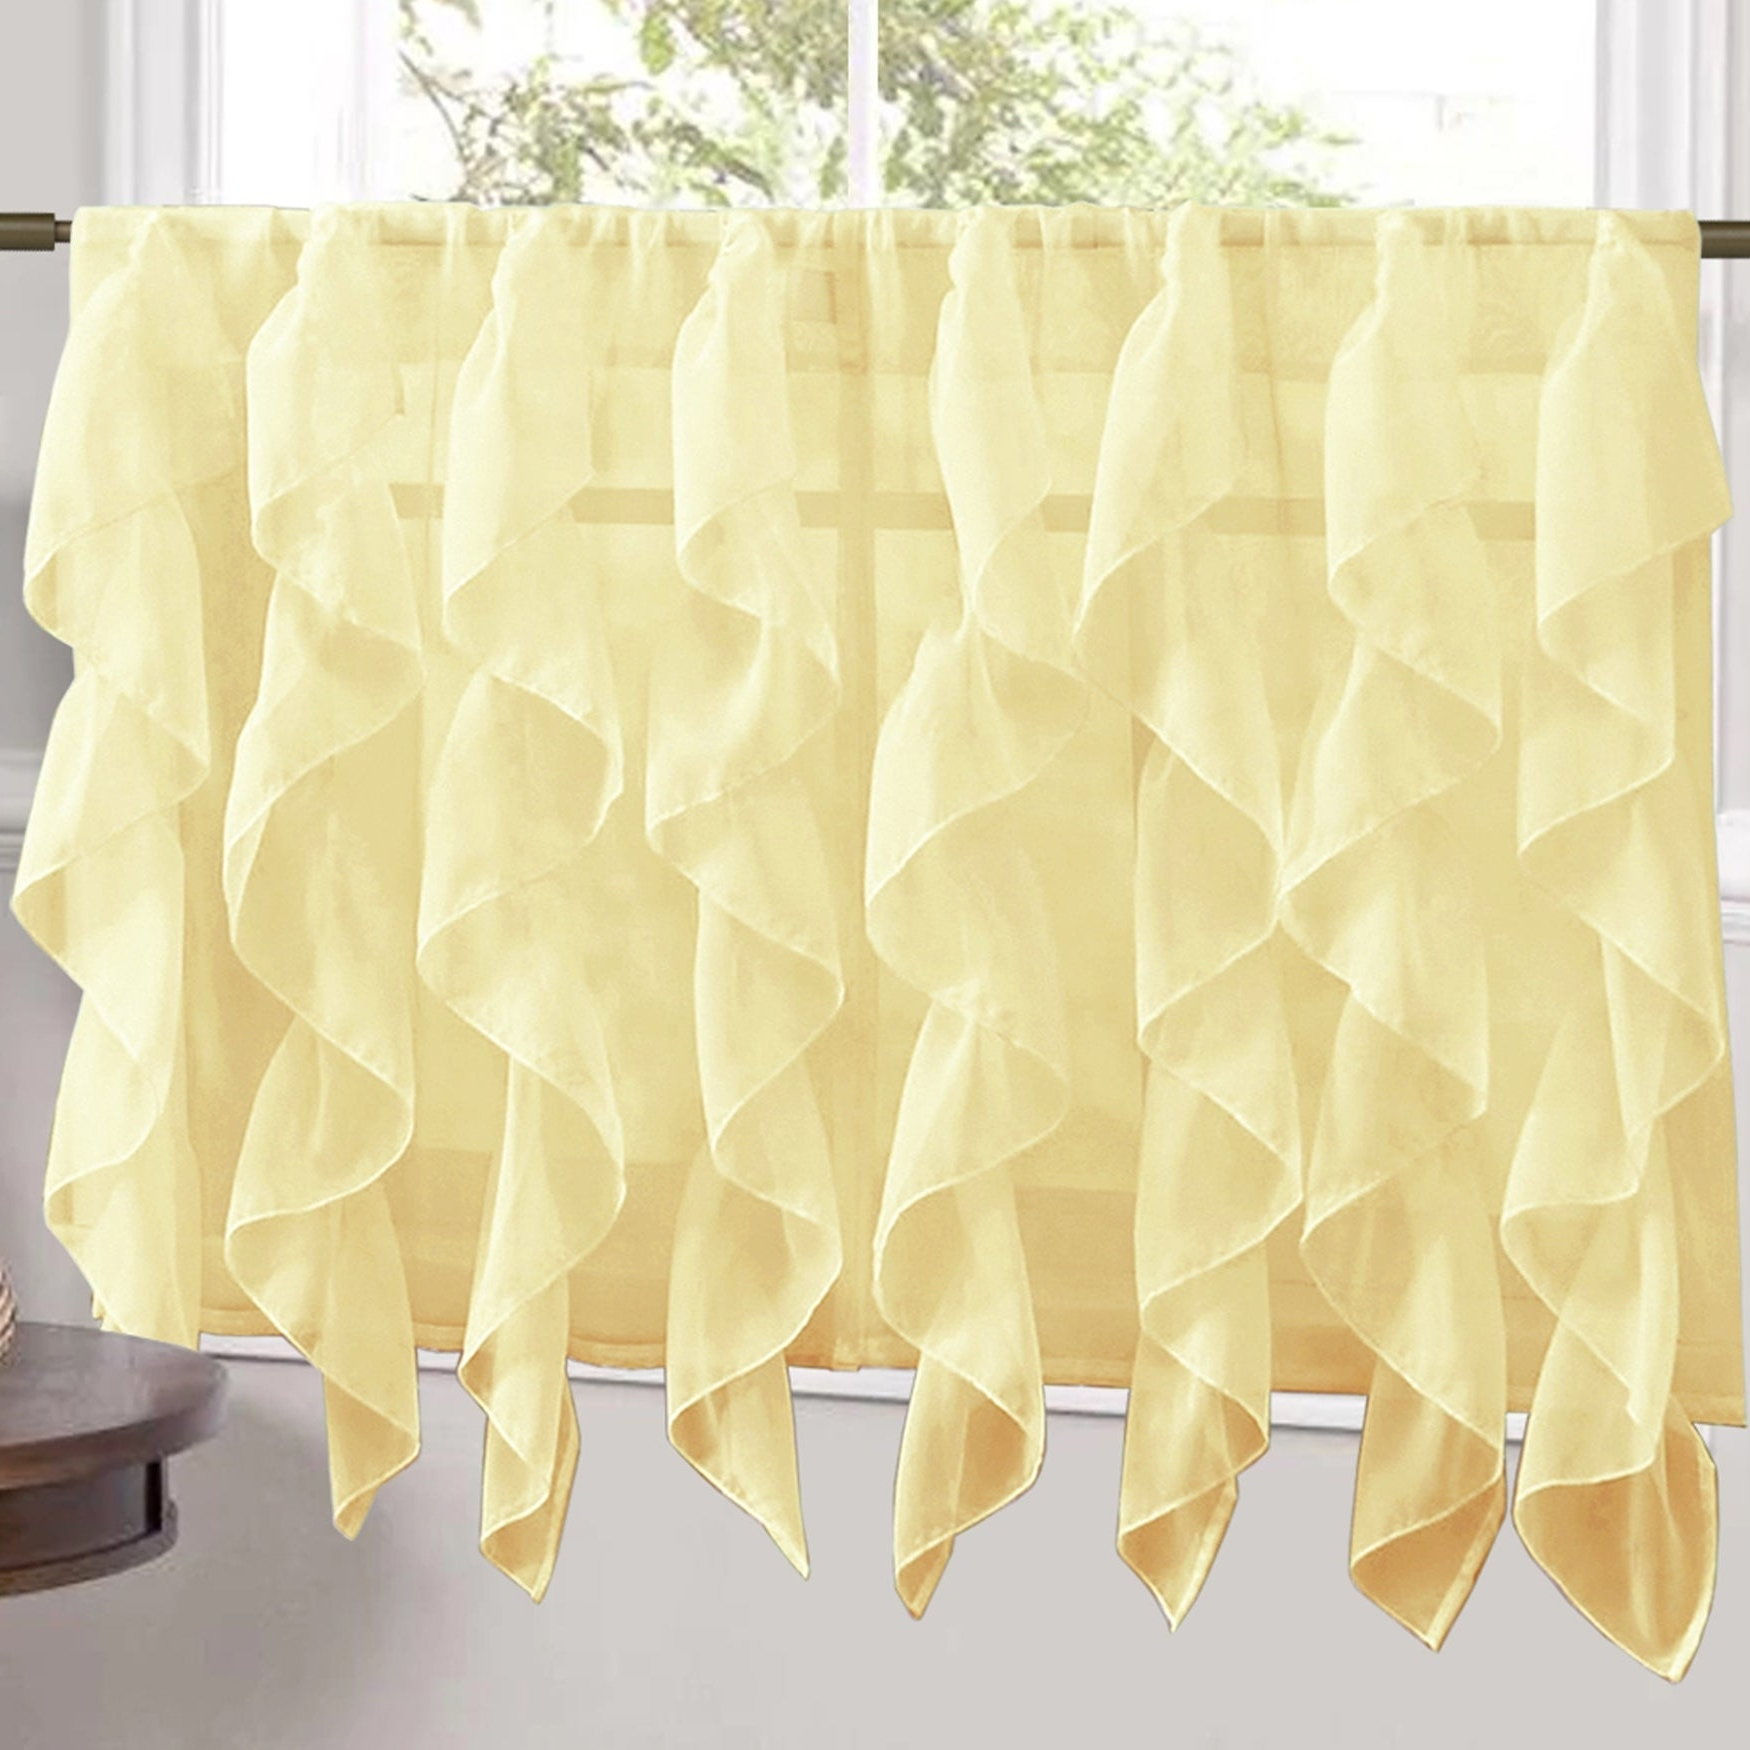 Newest Sweet Home Collection Maize Vertical Ruffled Waterfall Valance And Curtain Tiers Pertaining To Maize Vertical Ruffled Waterfall Valance And Curtain Tiers (View 3 of 20)